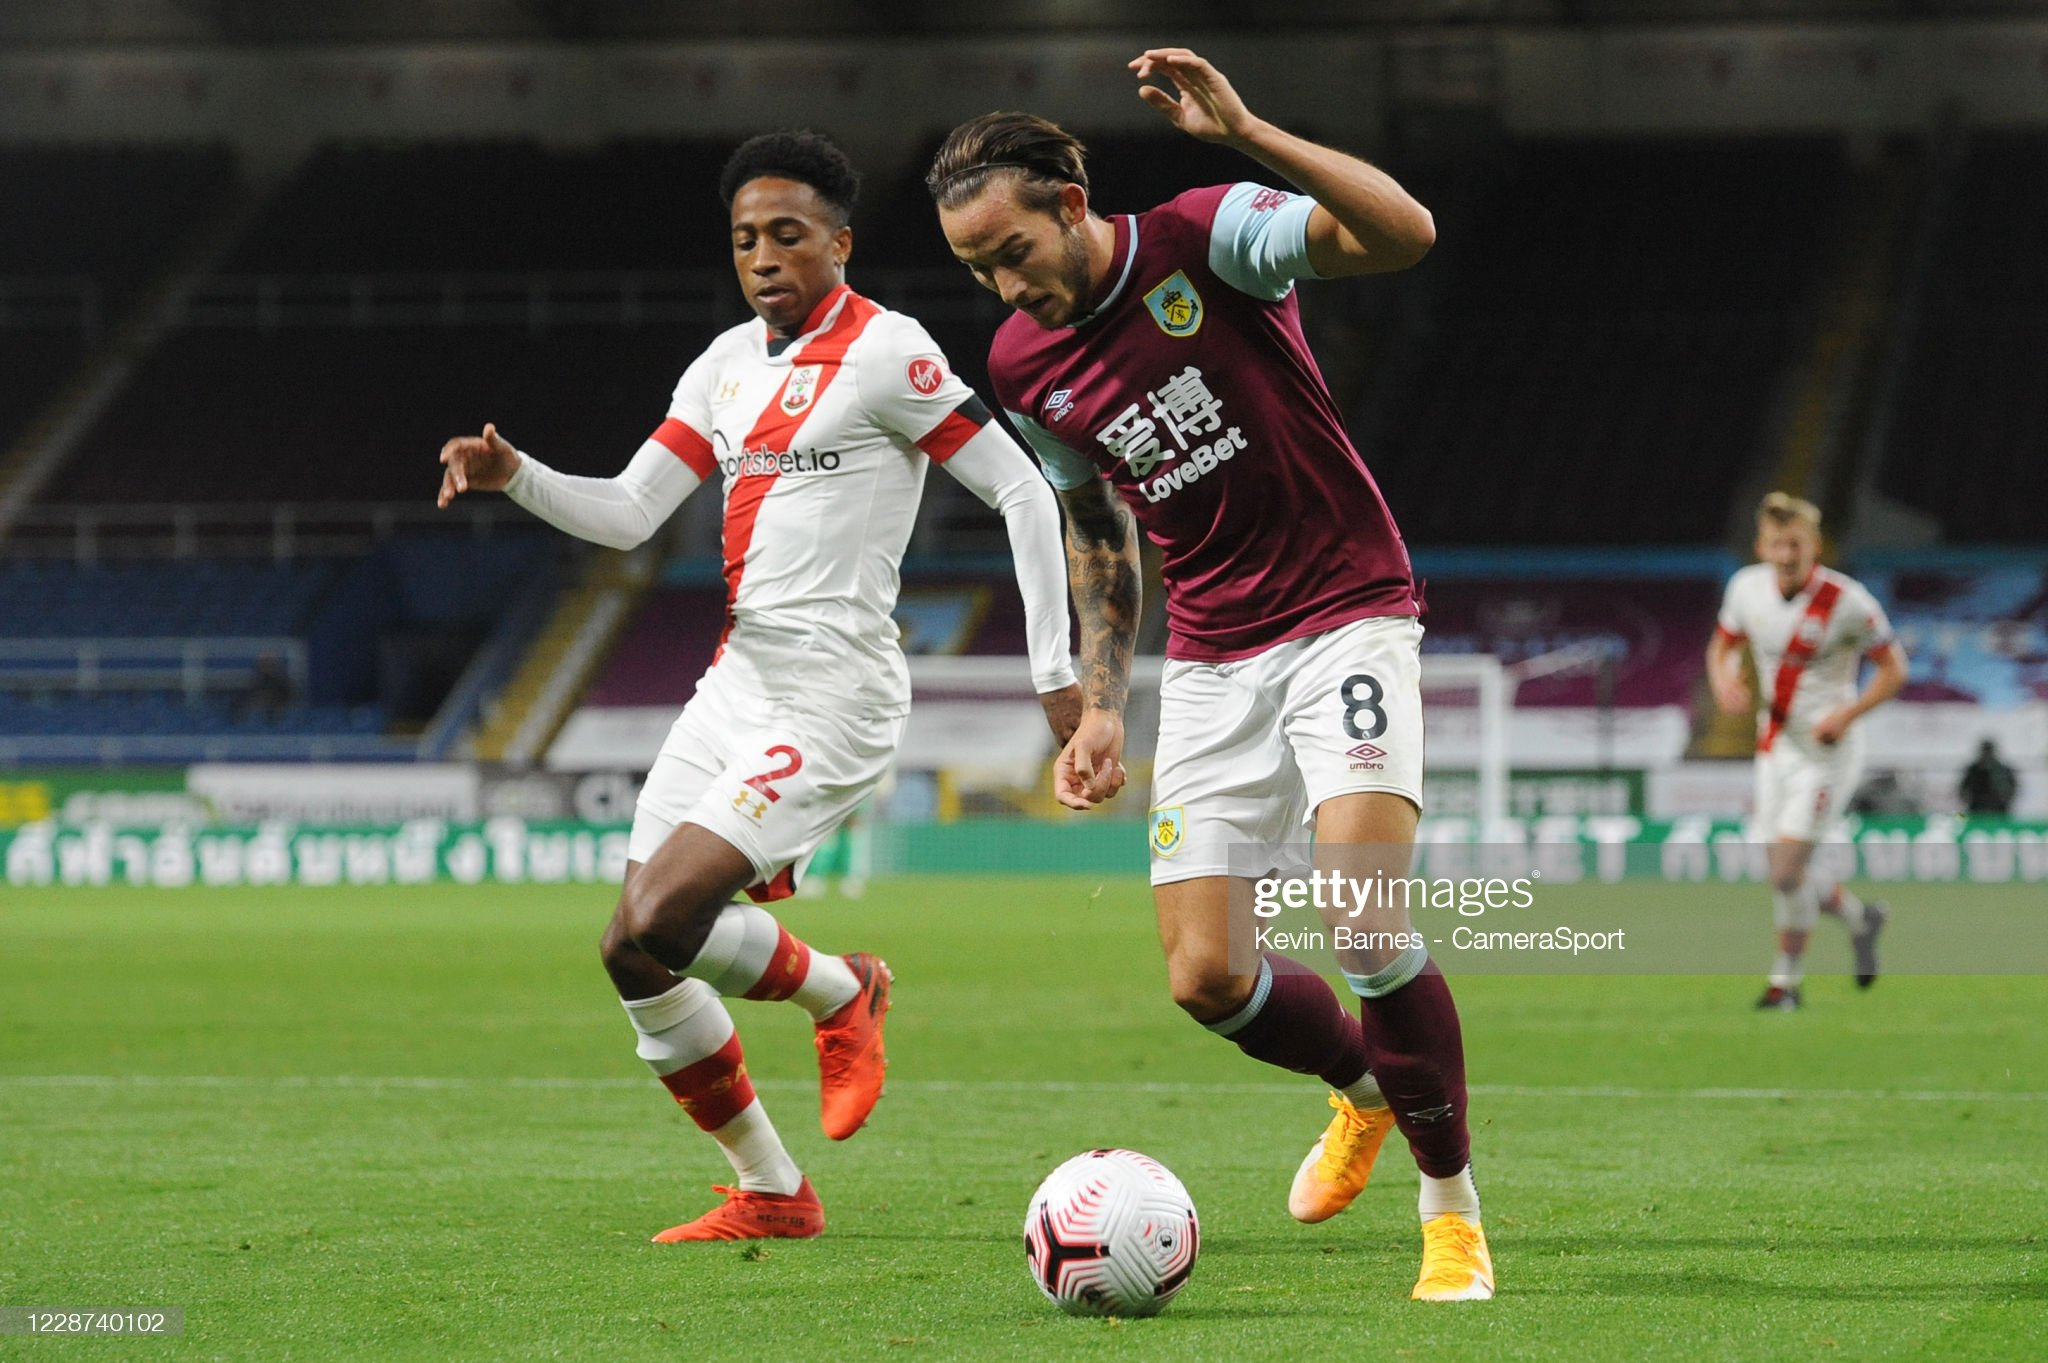 Southampton vs Burnley Preview, prediction and odds